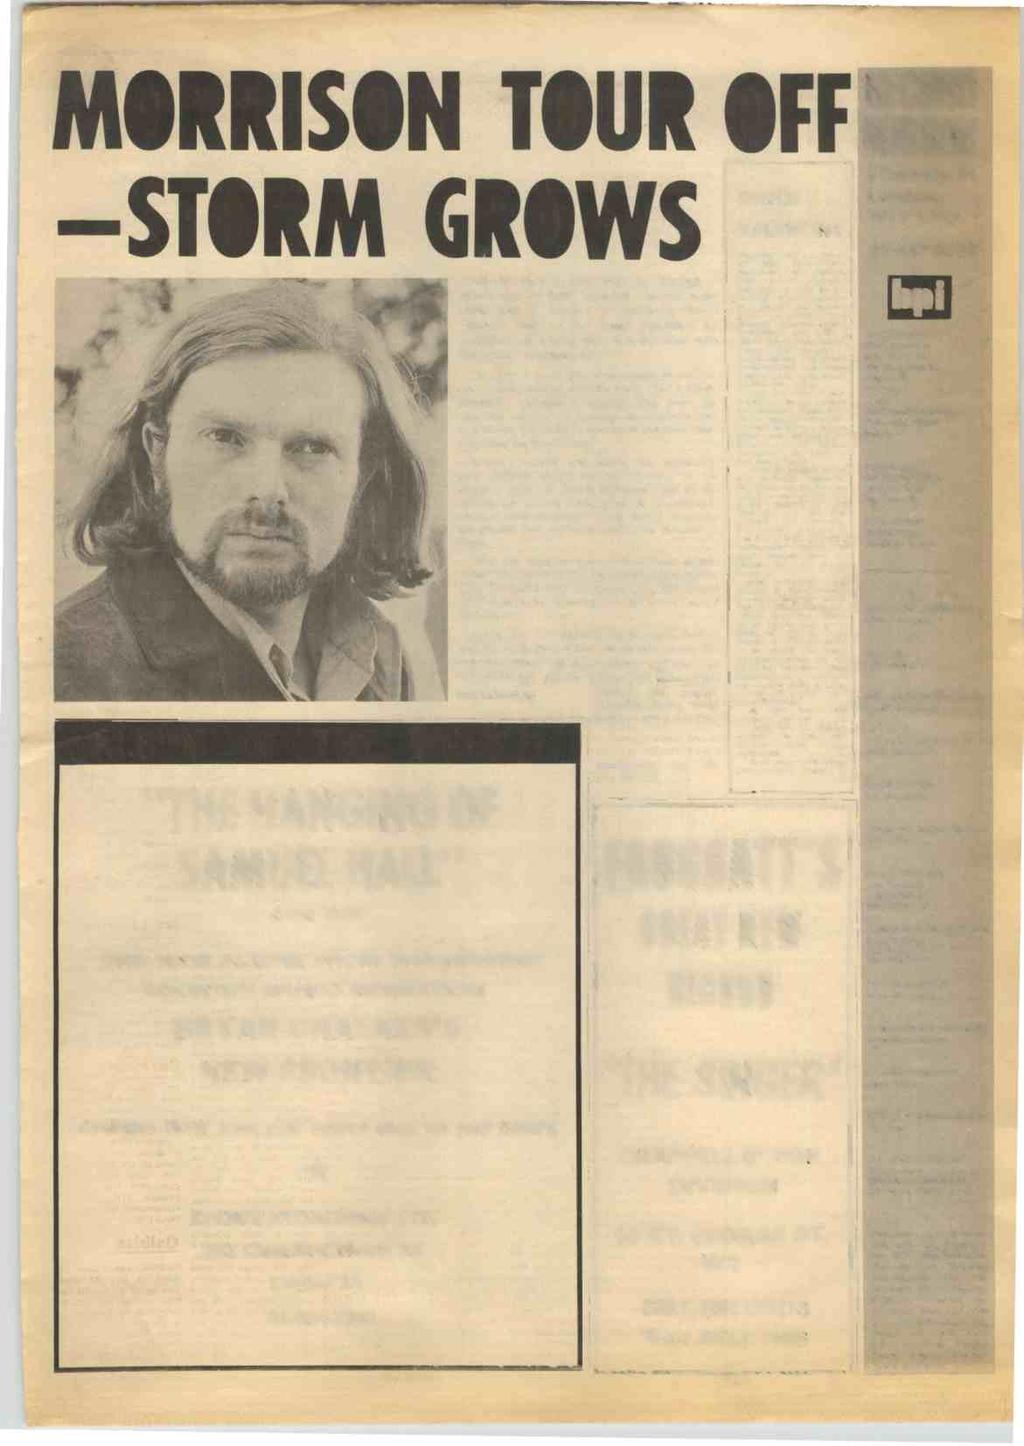 RECORD MIRROR, May 15, 1971 7 MORRISON TOUR OFF MIRROR STORM GRO VAN Morrison's June visit to Europe - which was to have included TV and radio dates and a concert at London's Royal Festival Hall -